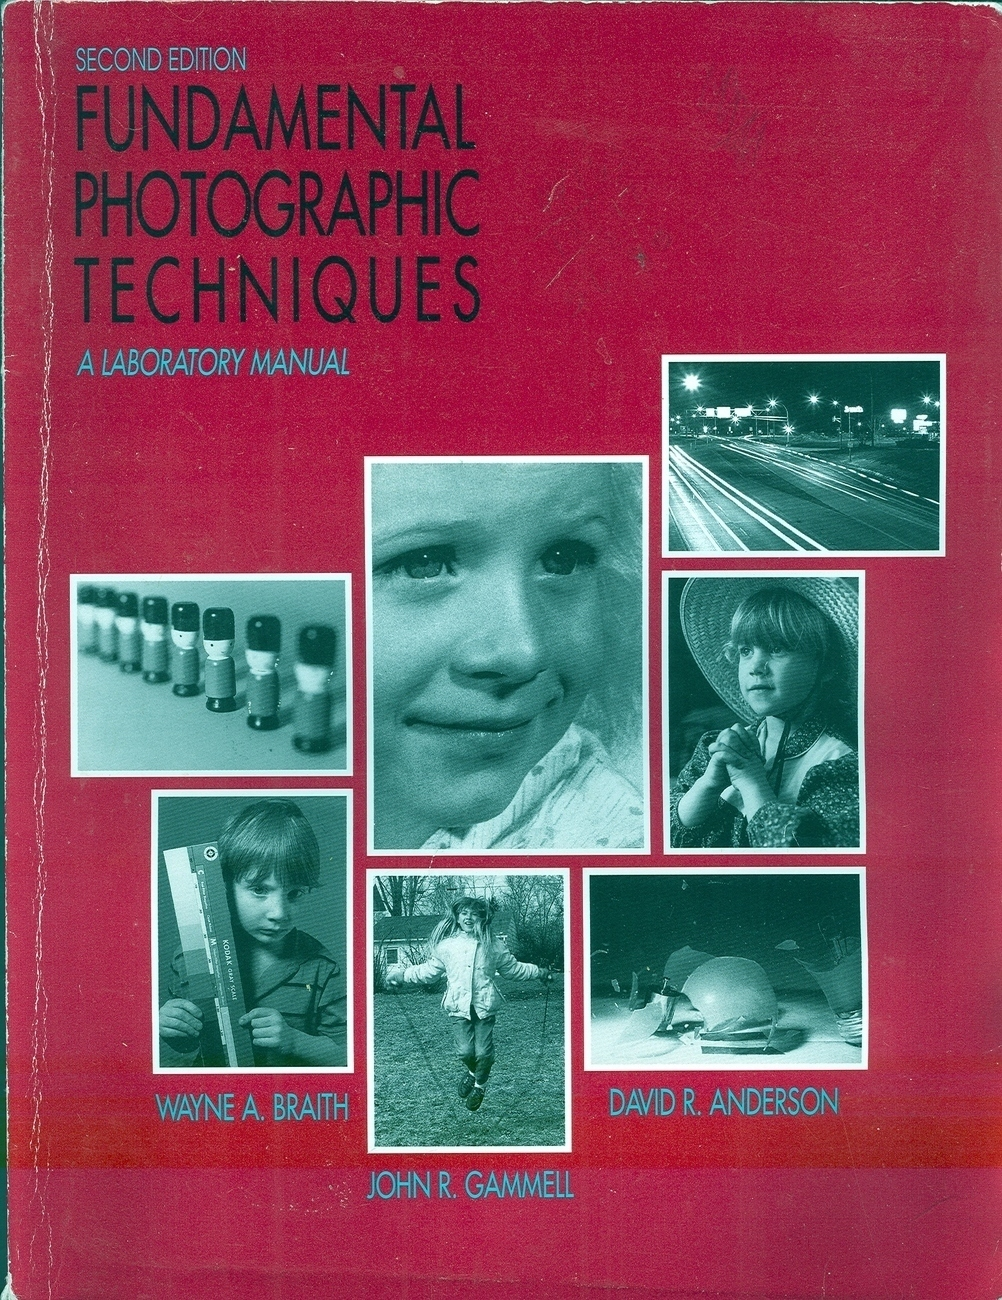 Fundamental Photographic Techniques by Wayne Braith (19